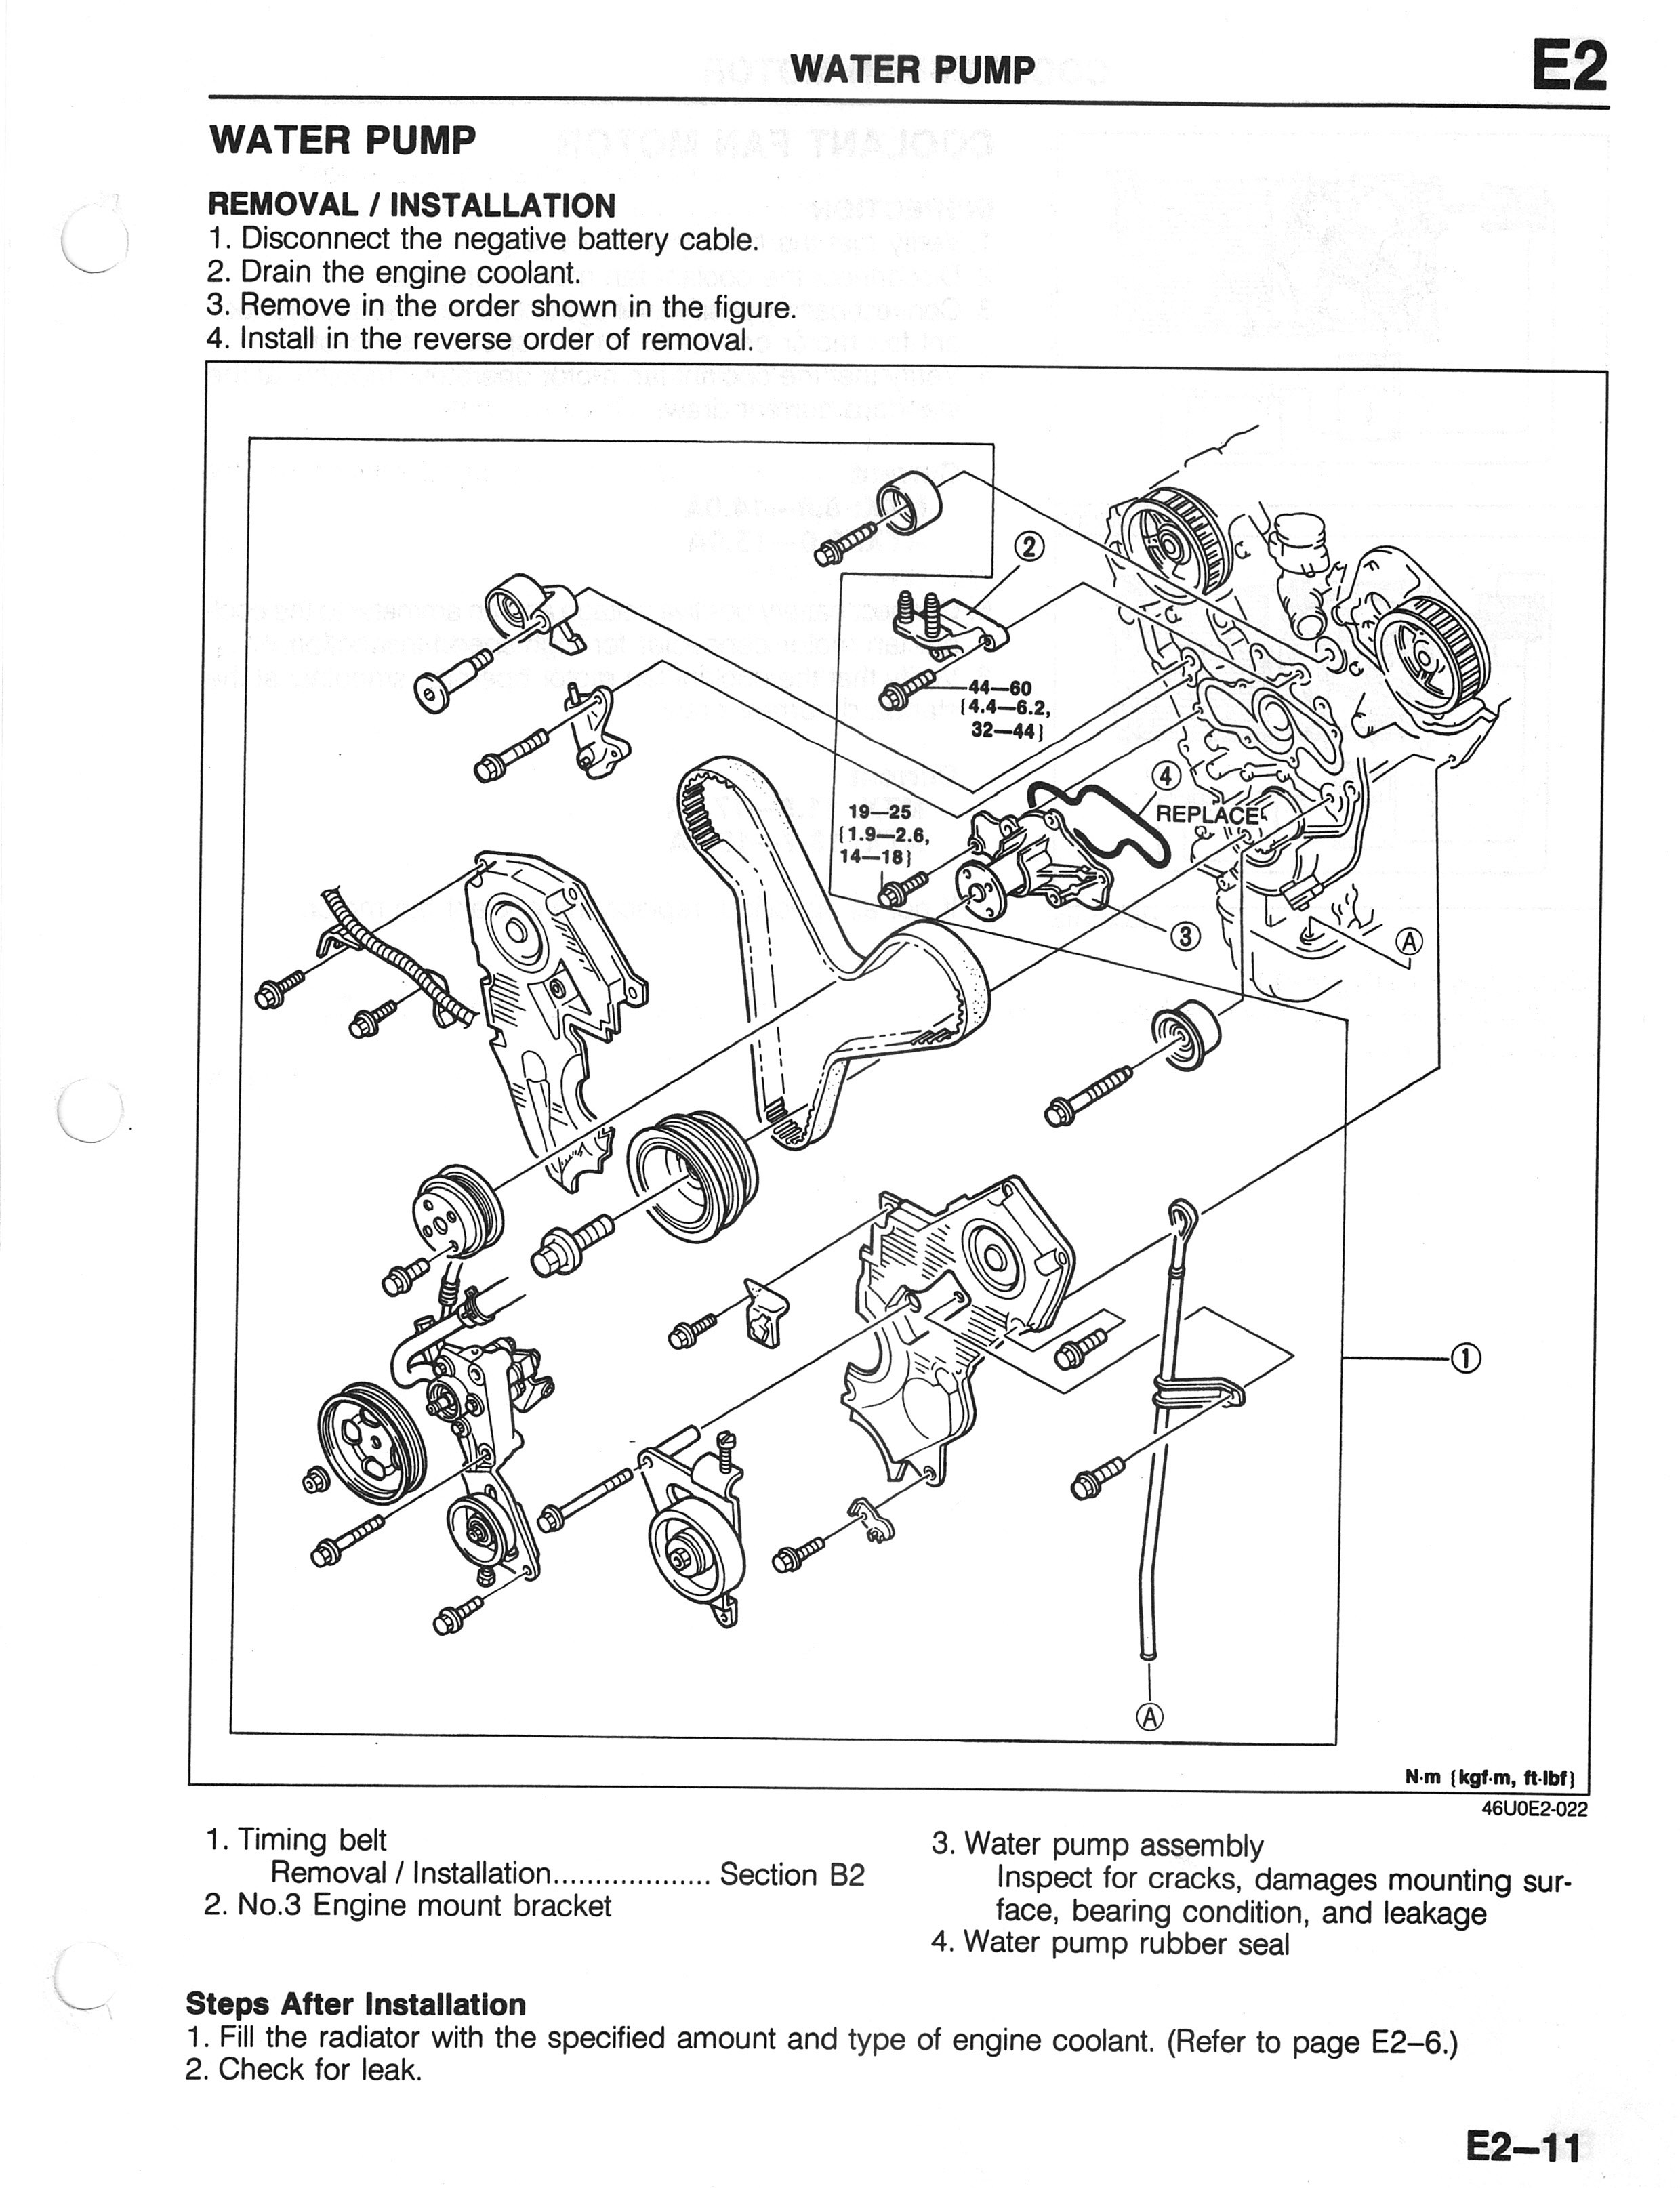 2001 Mazda Tribute V6 Engine Diagram is It the Water Pump 1993 2002 2 5l V6 Mazda626 forums Of 2001 Mazda Tribute V6 Engine Diagram 2001 Dodge Durango Parts Diagram Start Building A Wiring Diagram •